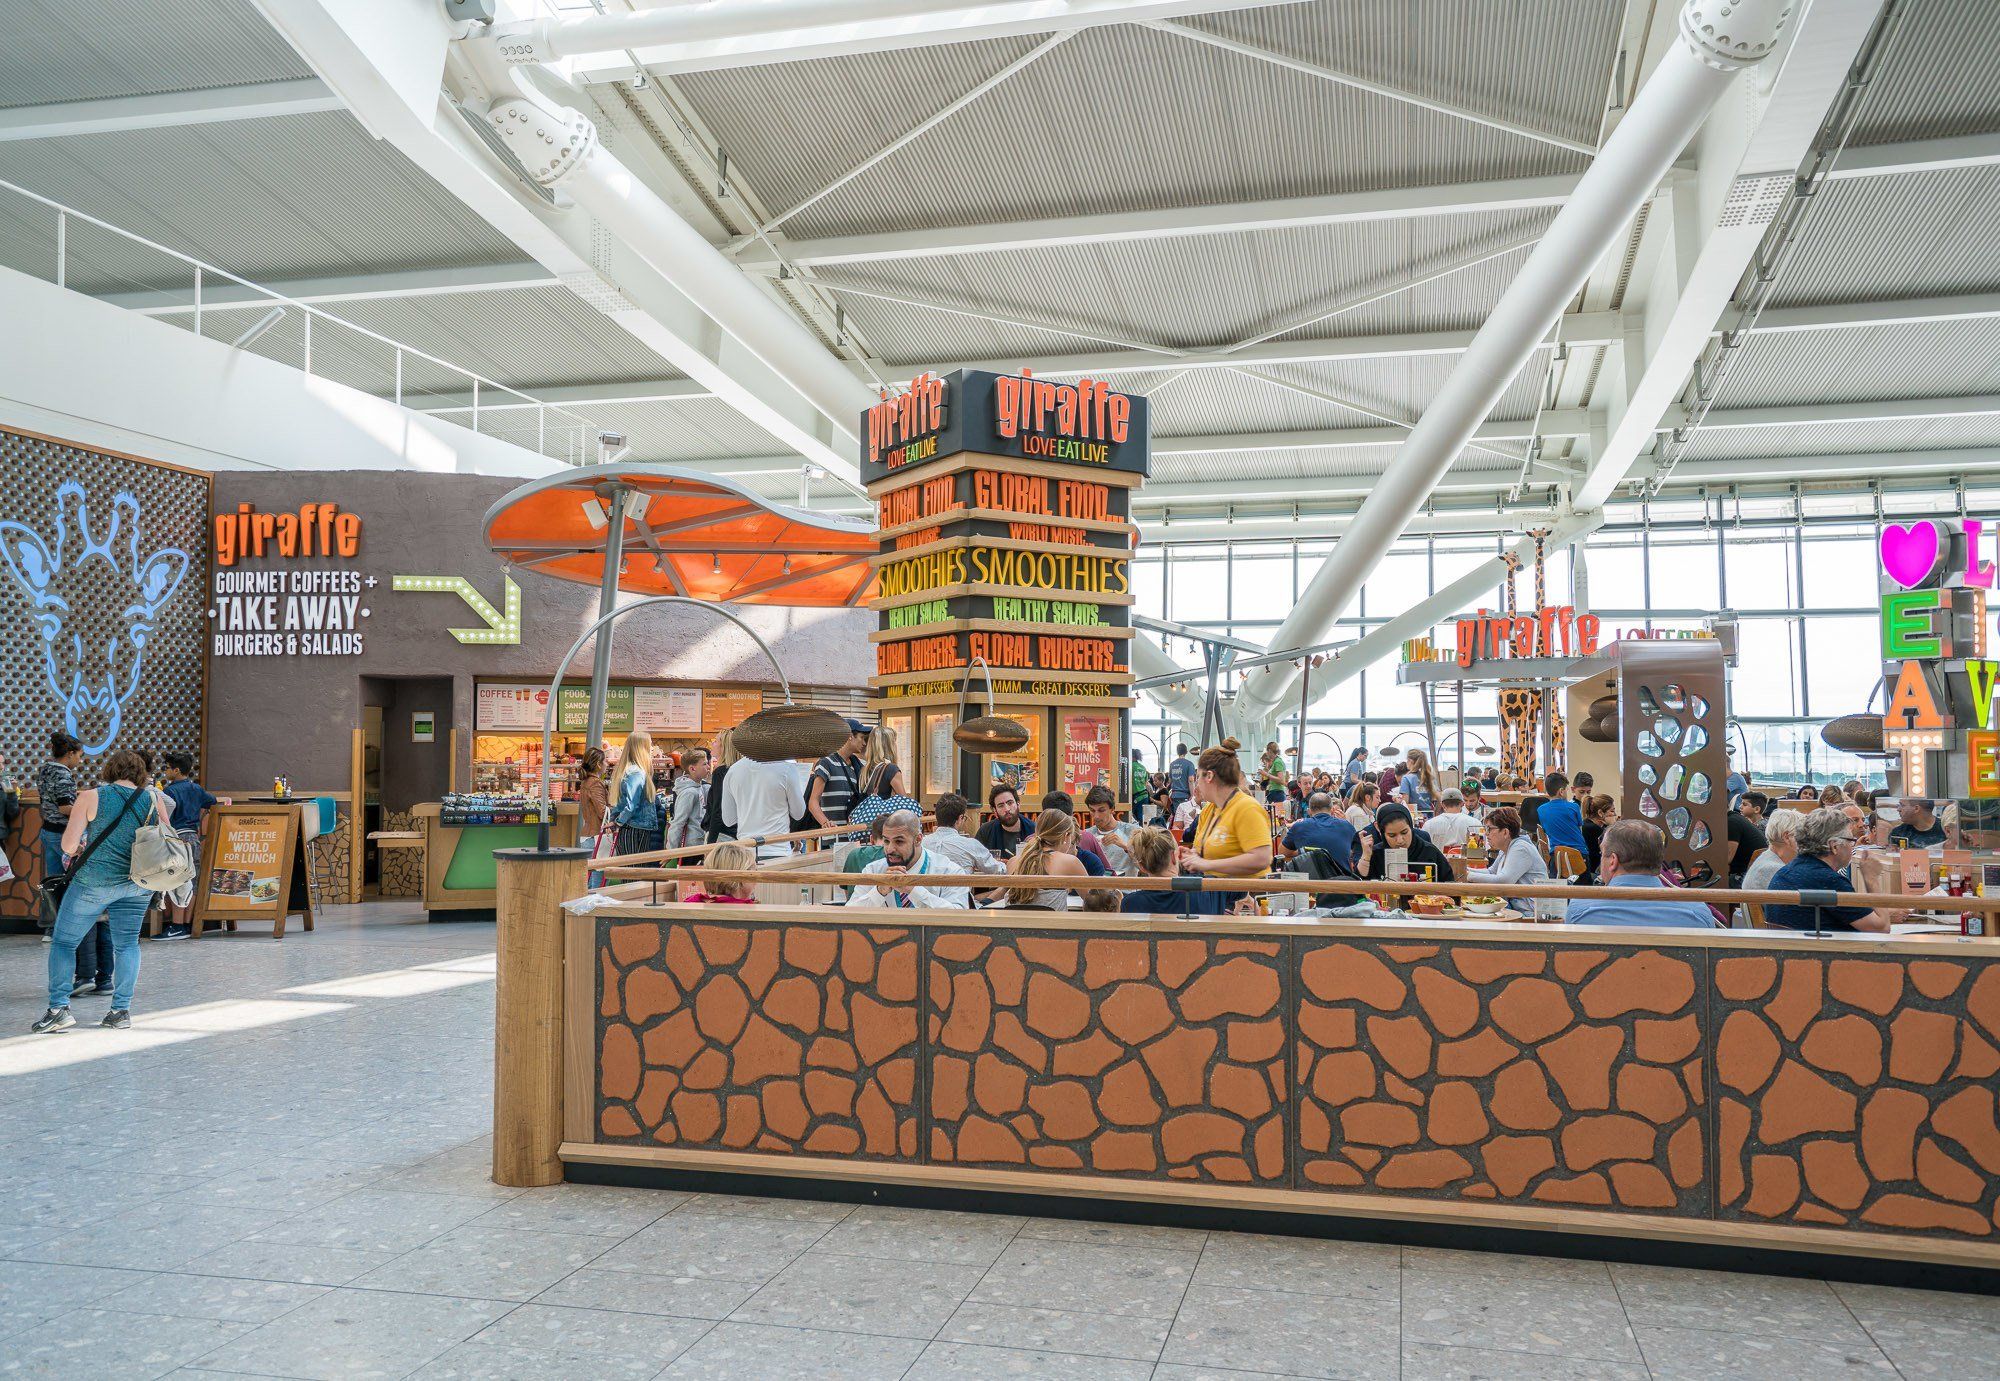 Giraffe is one of Heathrow Airport's family restaurants.